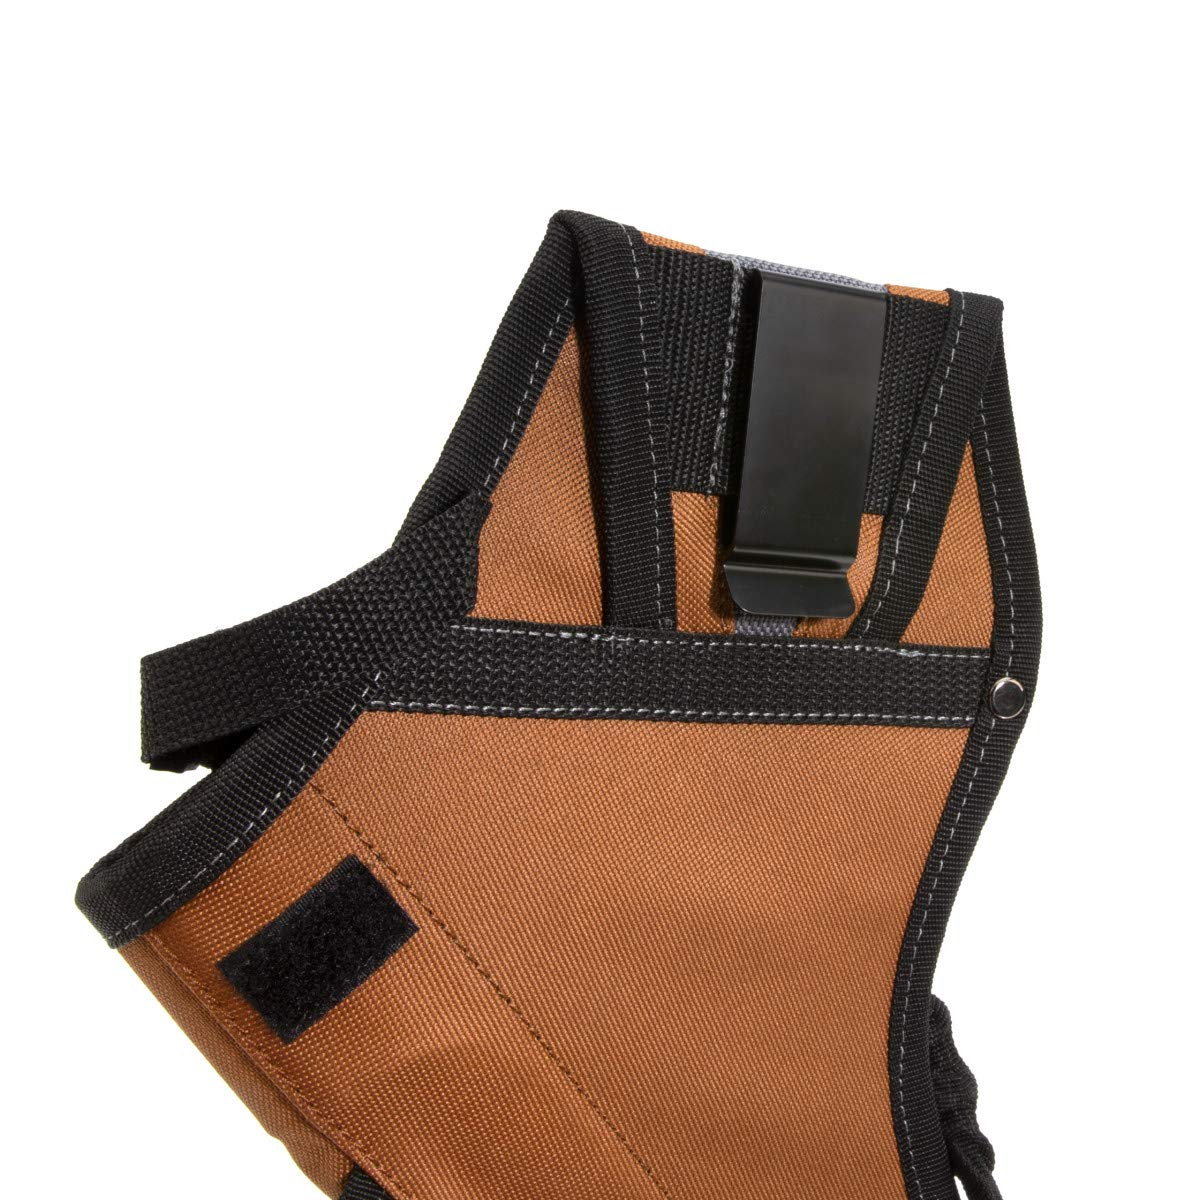 Dickies Work Gear 57097 5-Pocket Drill Holster with Safety Tether by Dickies Work Gear (Image #3)